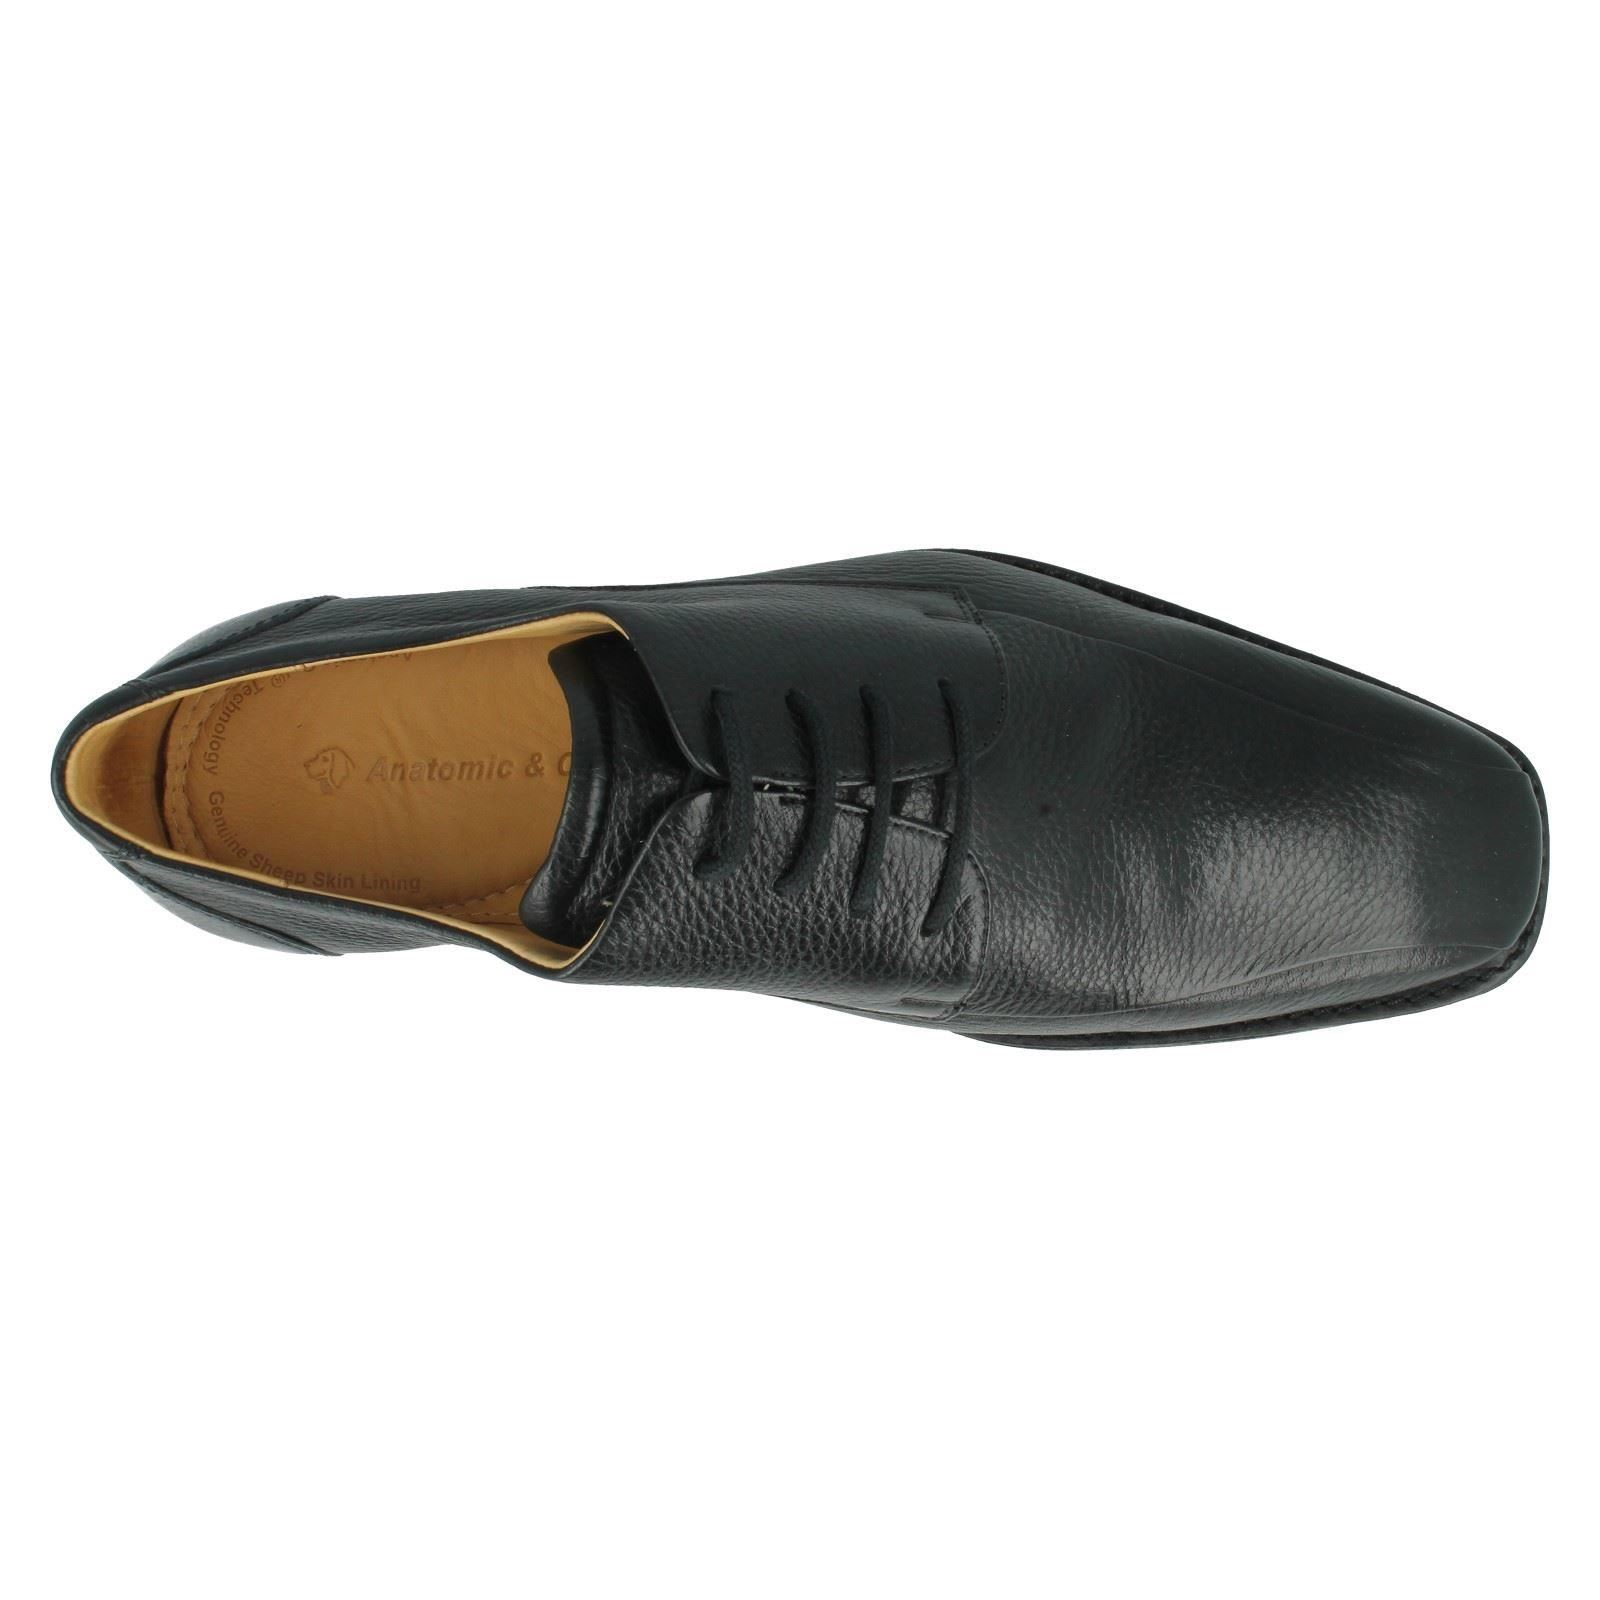 Mens Anatomic Style & Co Formal Leather Shoes the Style Anatomic - New Bonito 60673d